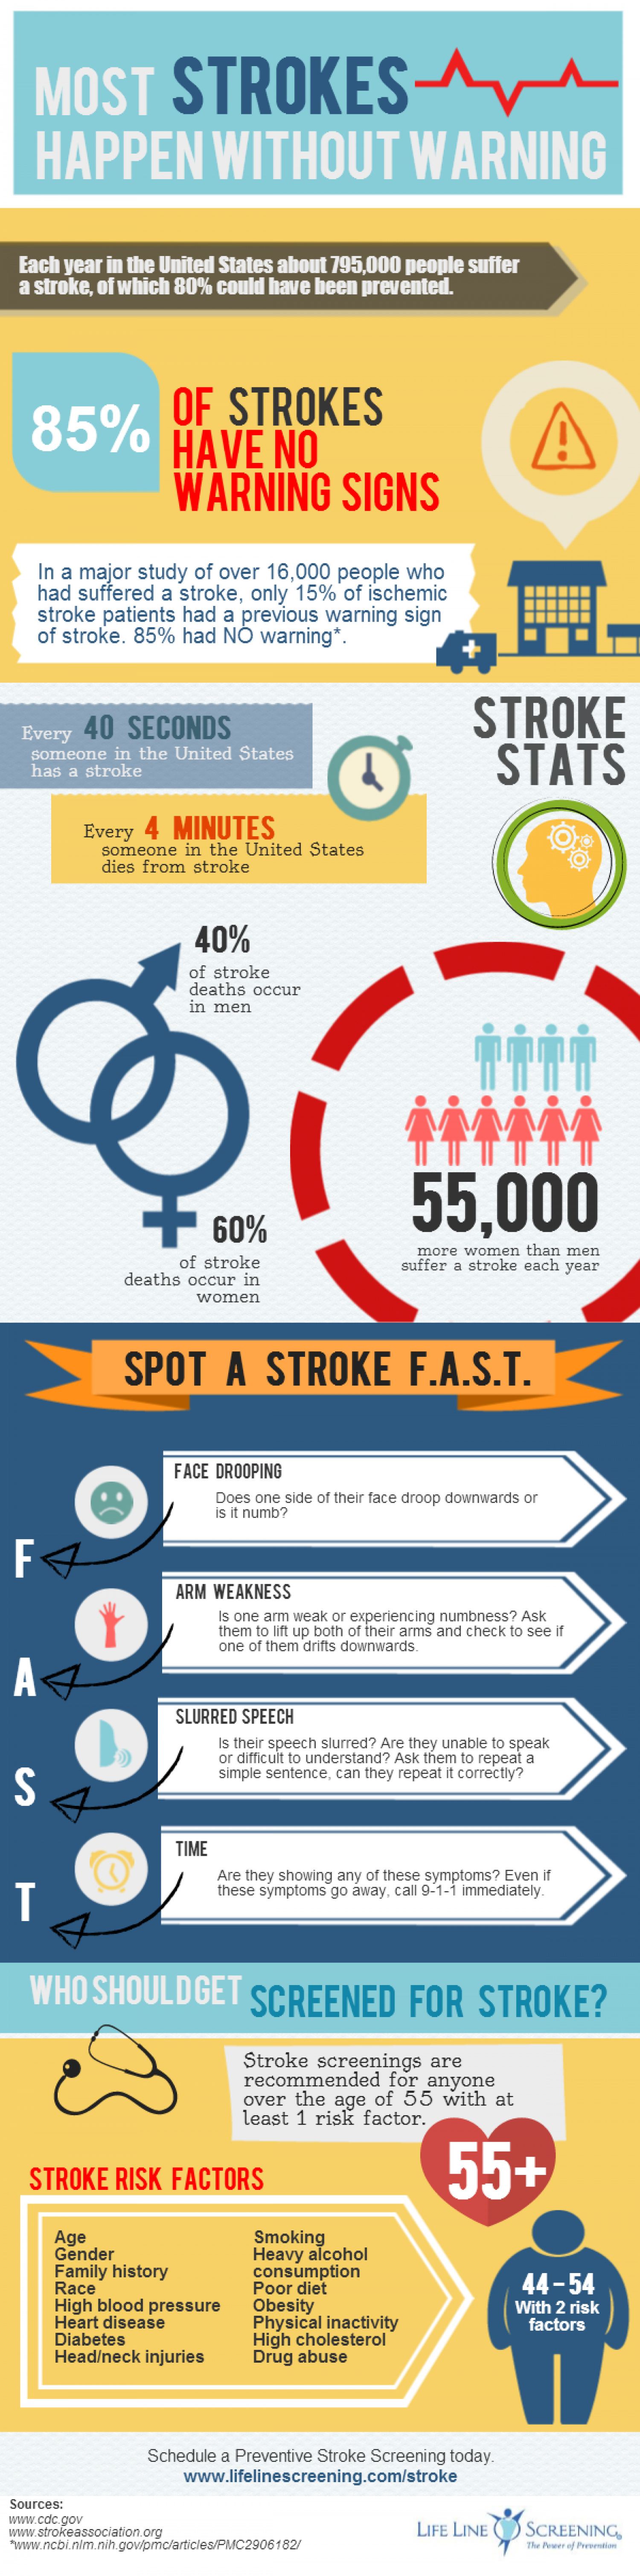 Most Strokes Happen Without Warning Infographic